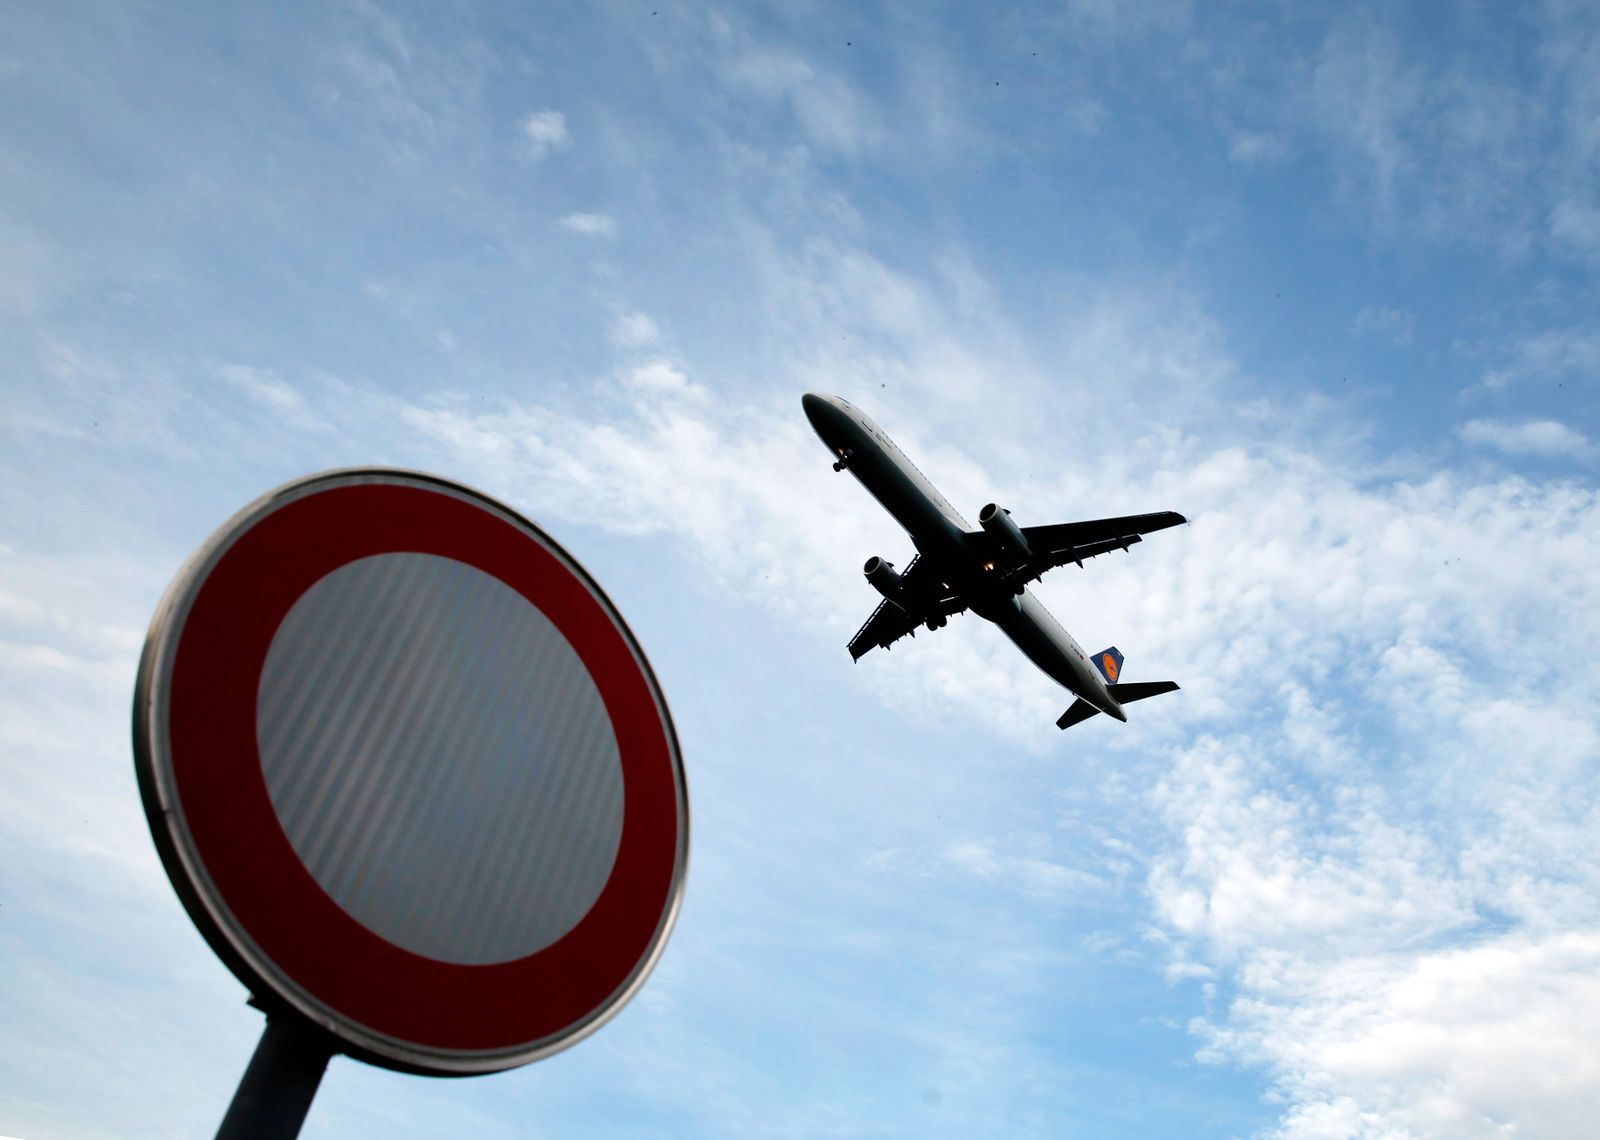 A German airline Lufthansa aircraft is pictured at Munich's airport